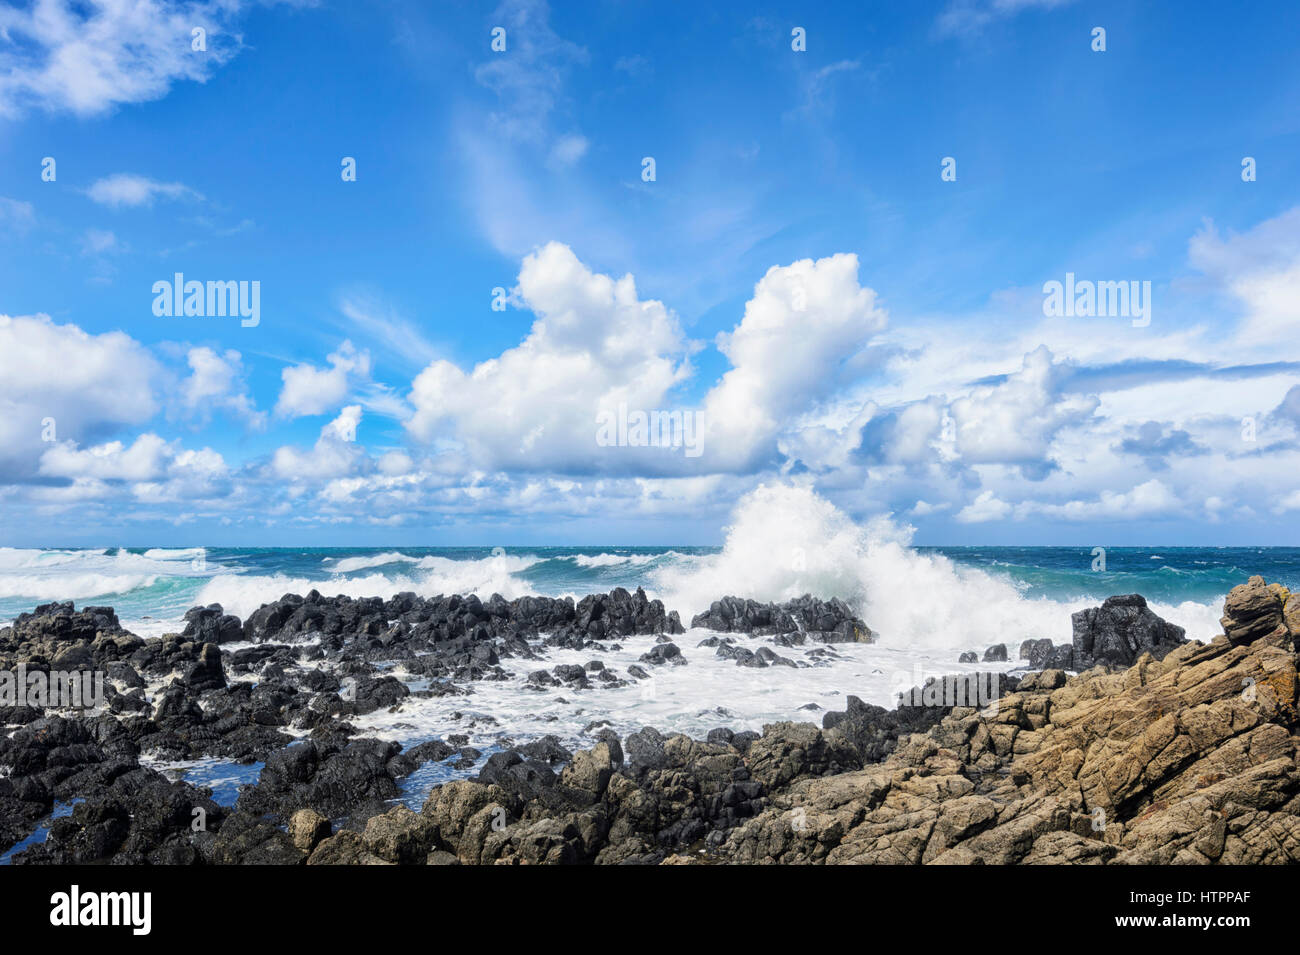 Heavy Seas with large waves at Minnamurra, Illawarra Coast, New South Wales, NSW, Australia Stock Photo